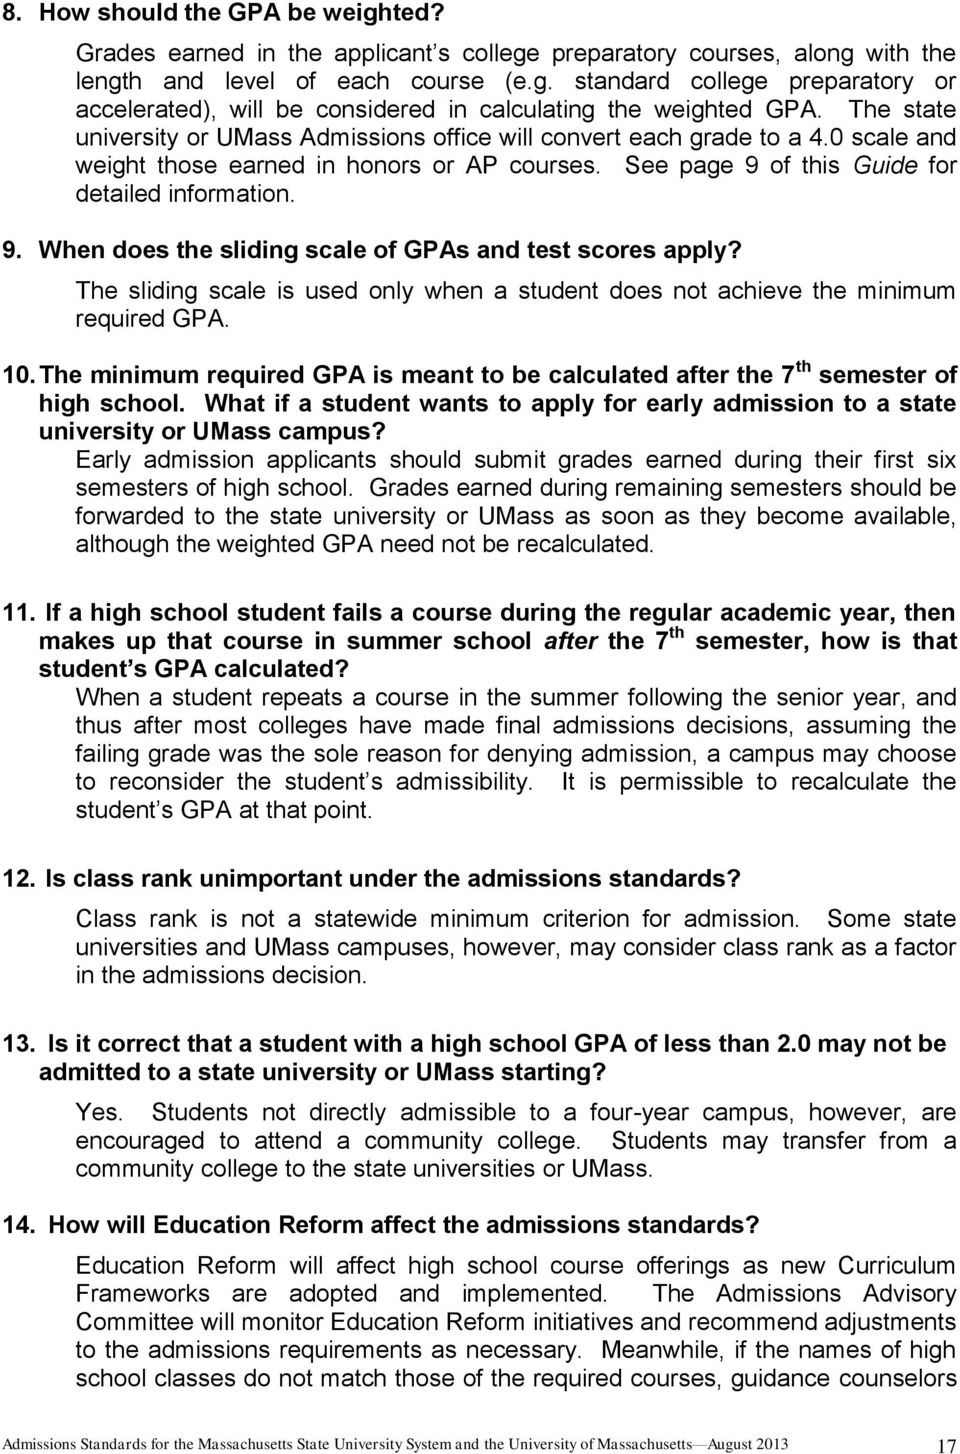 of this Guide for detailed information. 9. When does the sliding scale of GPAs and test scores apply? The sliding scale is used only when a student does not achieve the minimum required GPA. 10.